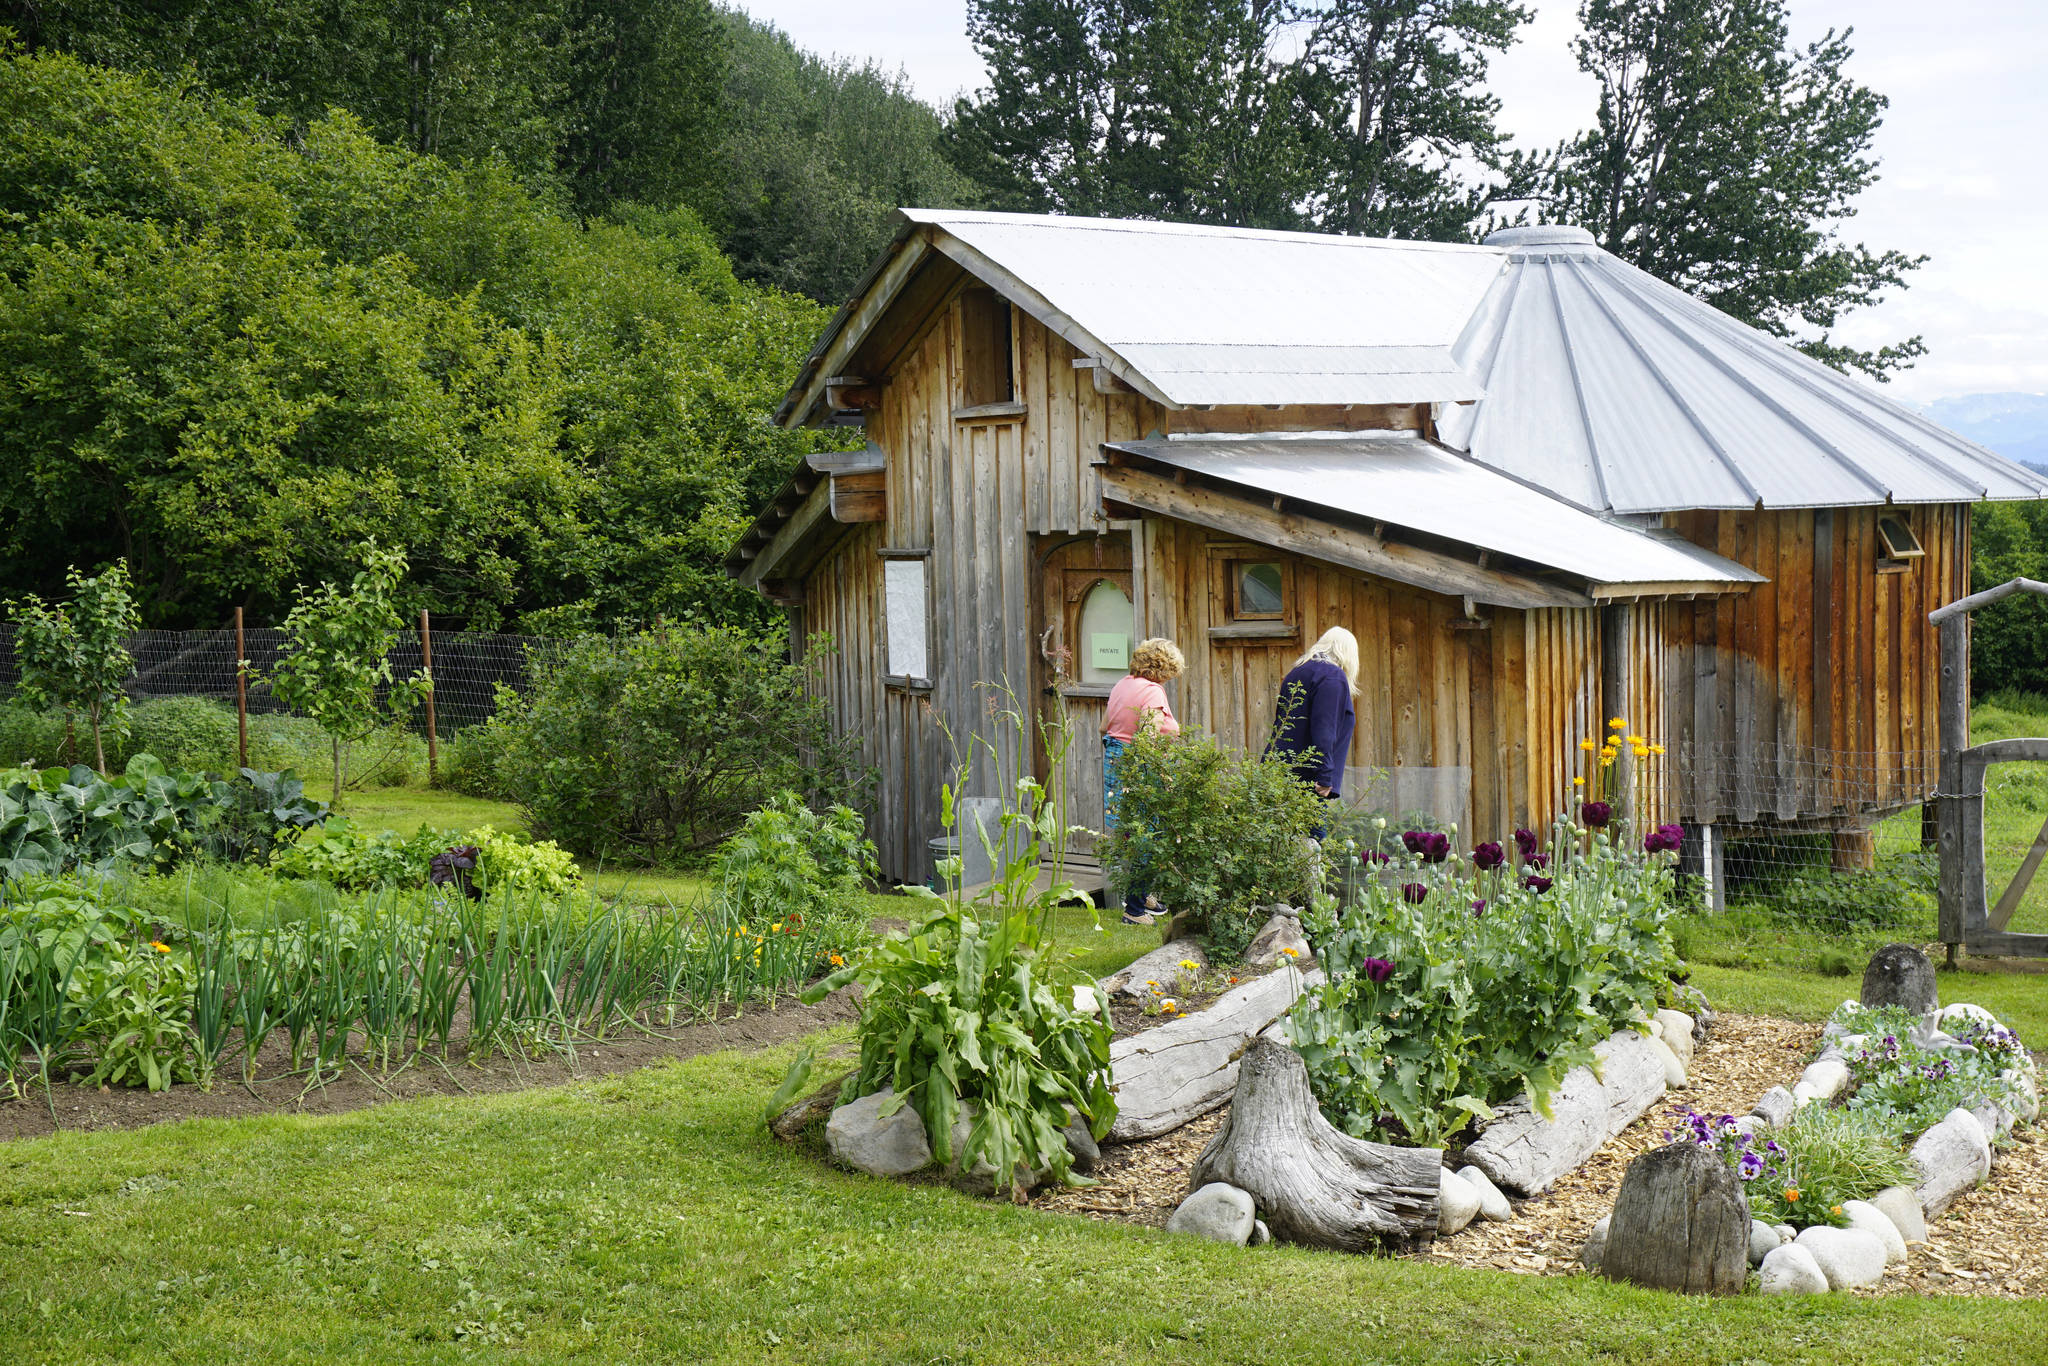 Drifwood and rock is used to line the gardens at the Jeff and Ranja Dean farm off East End Road in Homer, Alaska. It was one of five gardens featured in the July 29, 2018 Homer Garden Tour. (Photo by Michael Armstrong/Homer News)